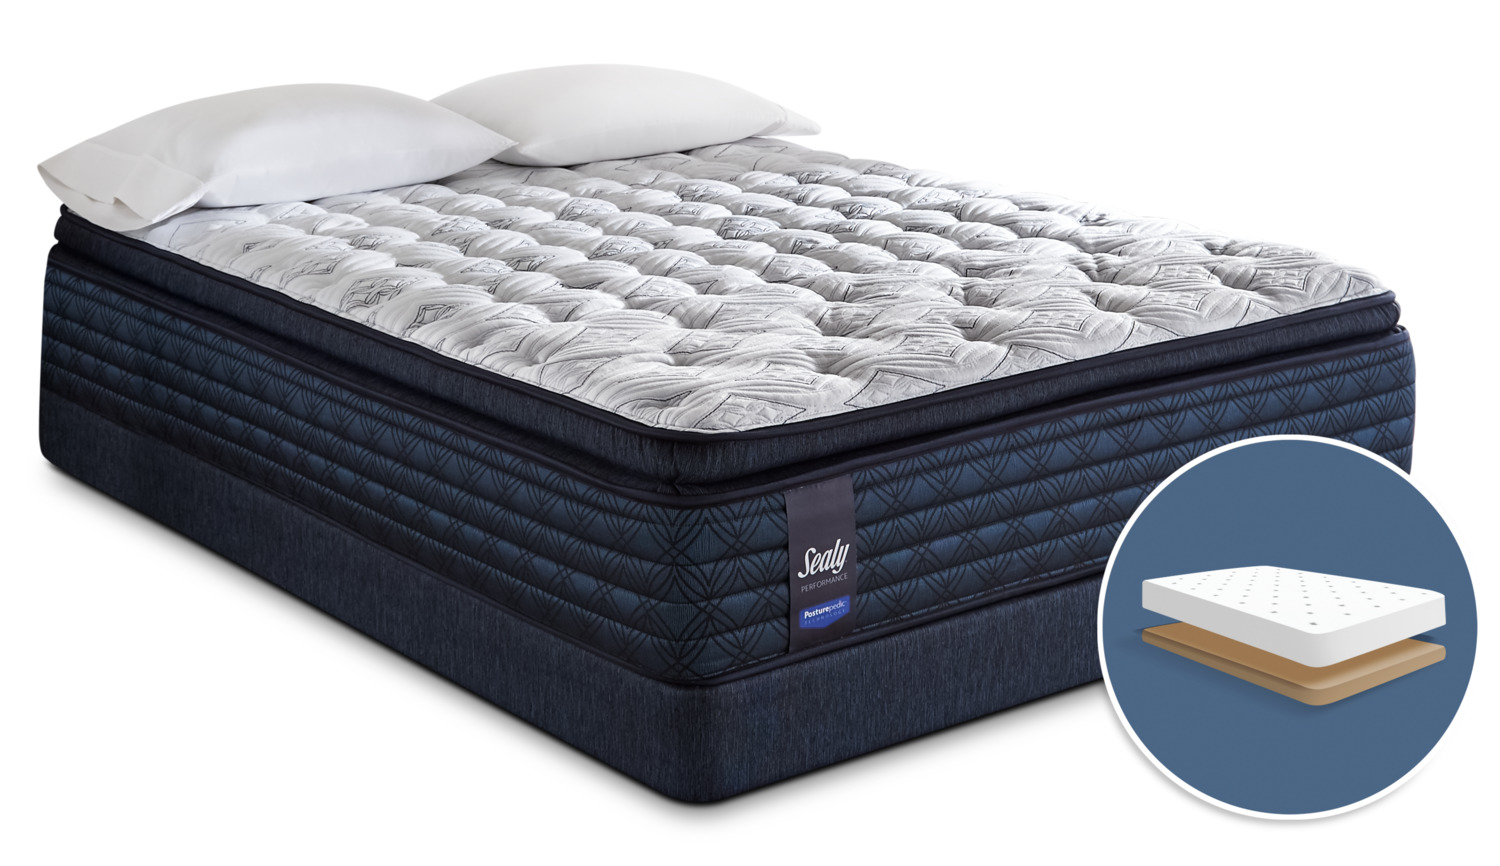 product br charcoal palmharbor king palm performance mattress set sealy mat harbor mattresses